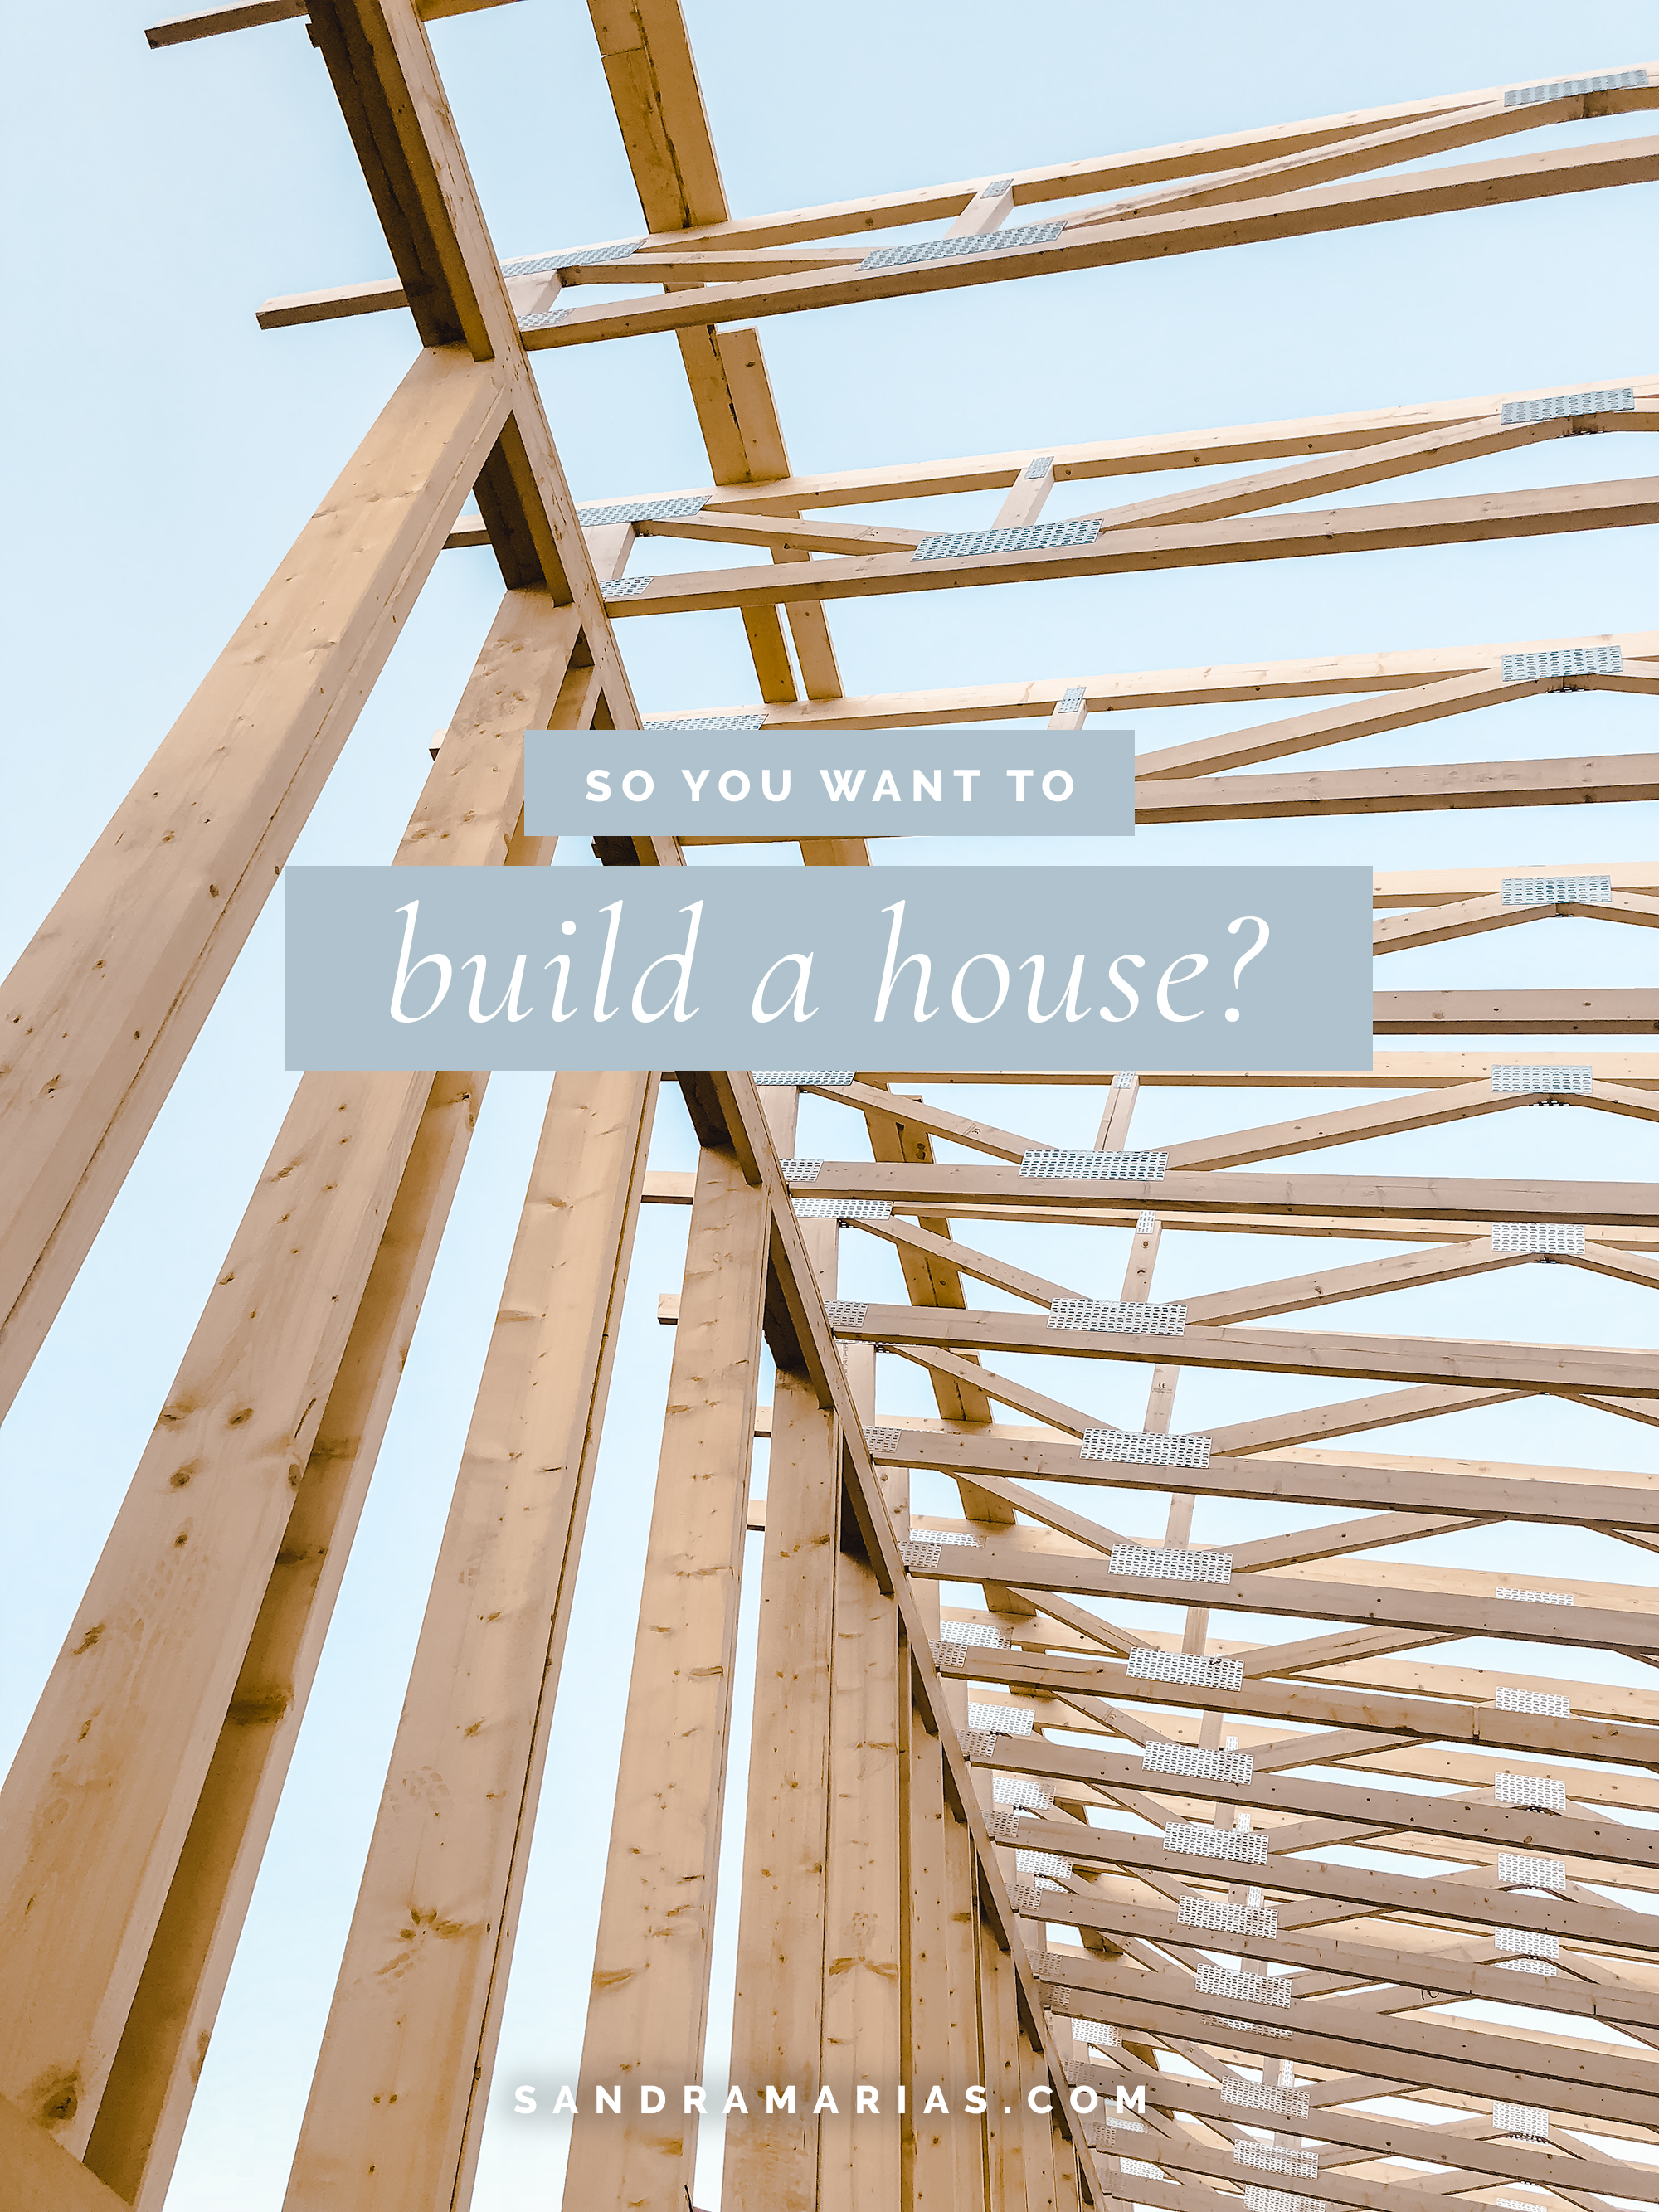 The Ins and Outs of Starting a House Building Project ||Building Home ||The Process ||By Sandramaria ||Sandramarias.com